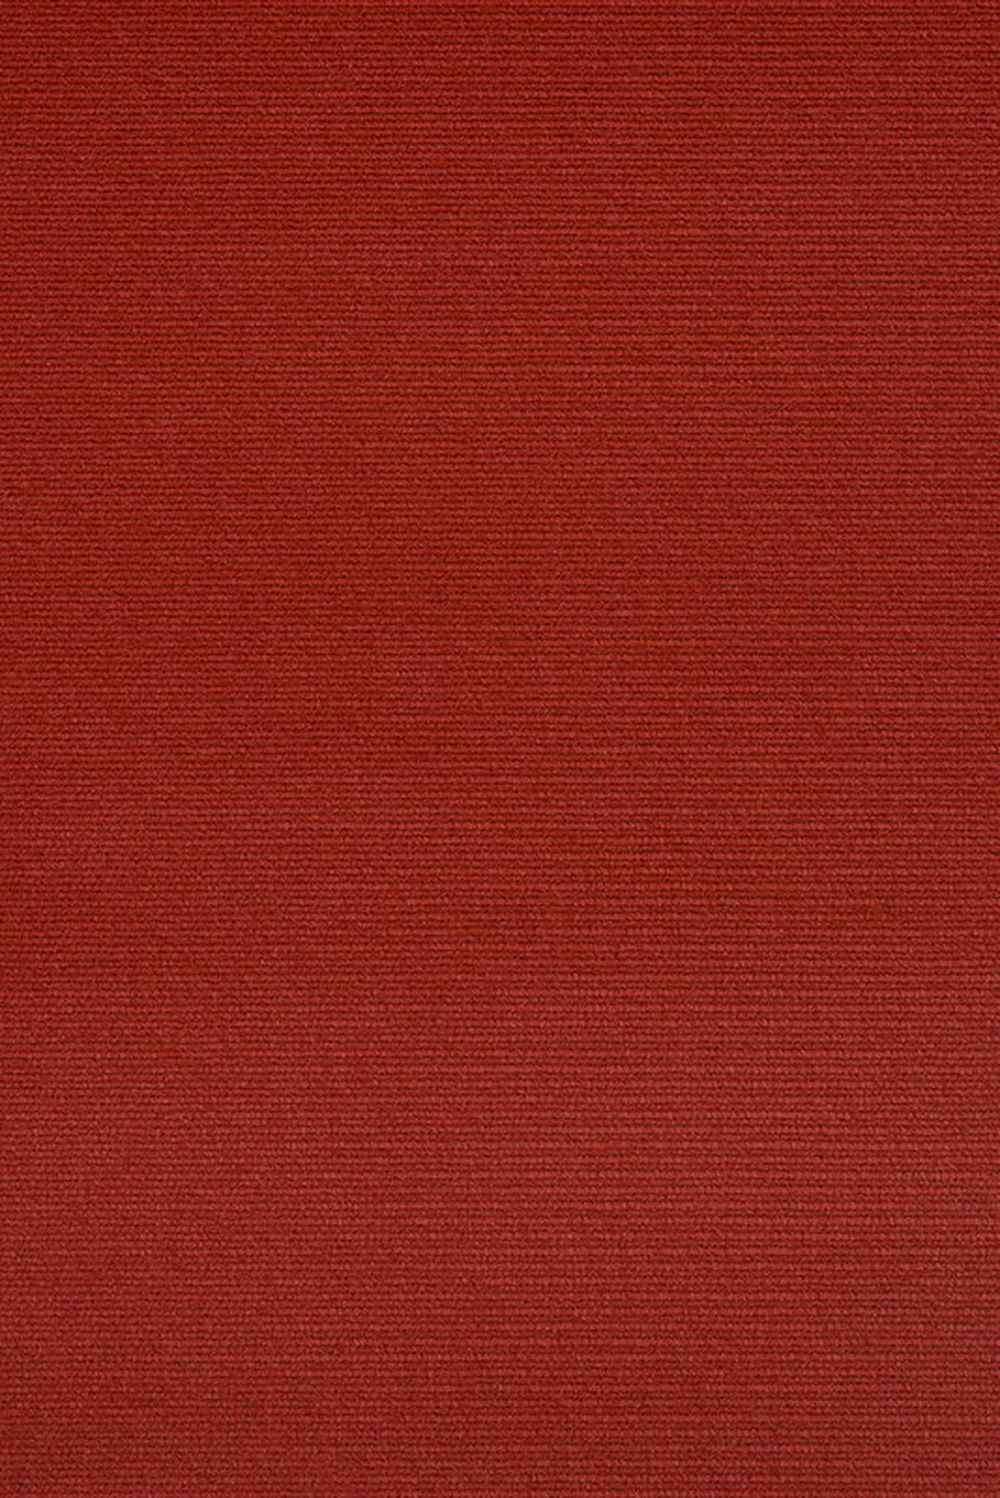 Photo of the fabric South Beach Marsala swatch by Mokum. Use for Upholstery Heavy Duty, Accessory. Style of Plain, Velvet